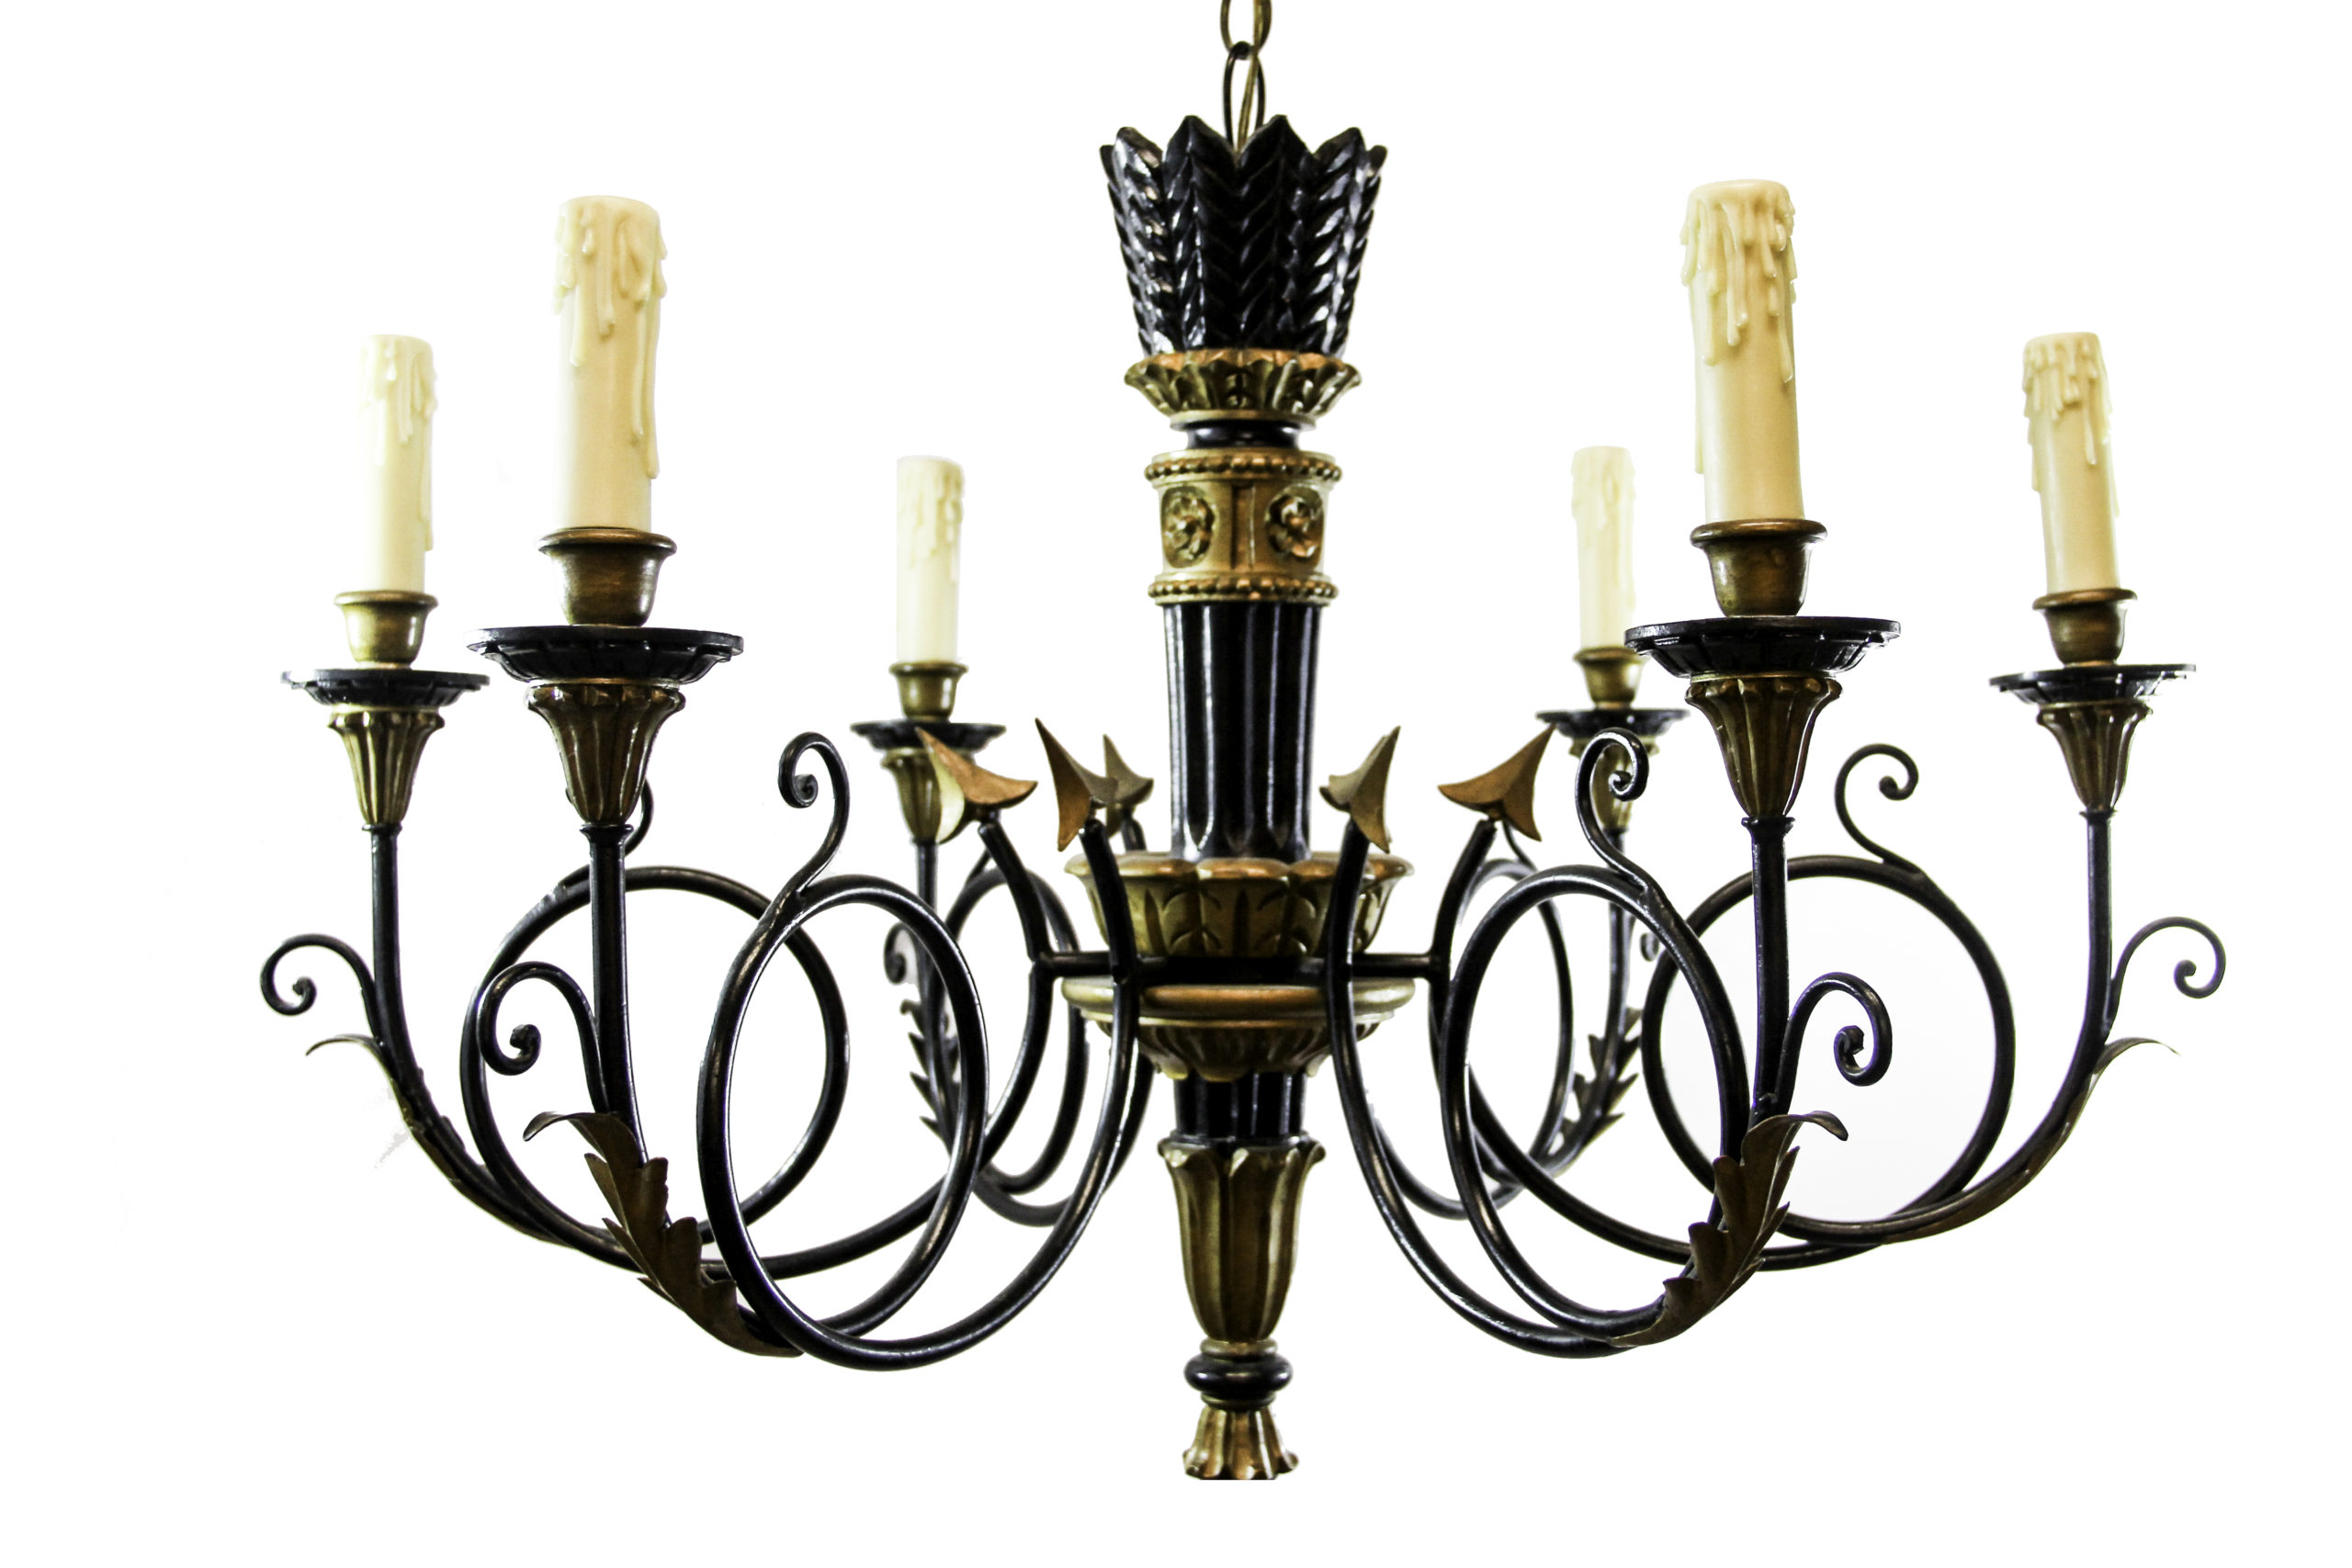 Black and Gold 6 Light Chandelier   The Lamp Shoppe